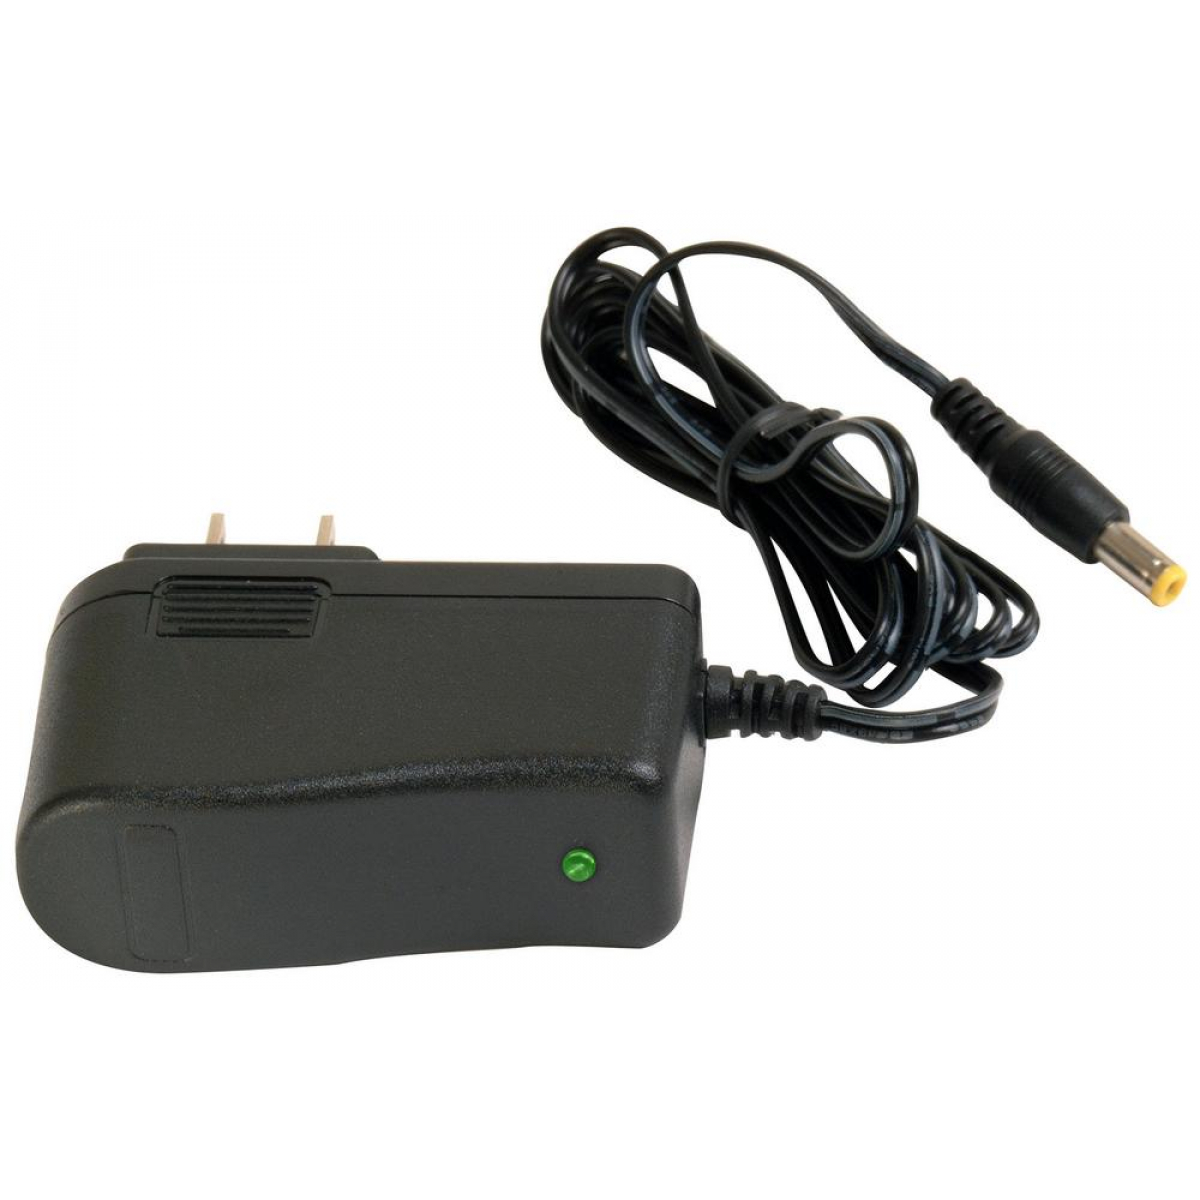 AC Adapter for Yamaha Keyboards